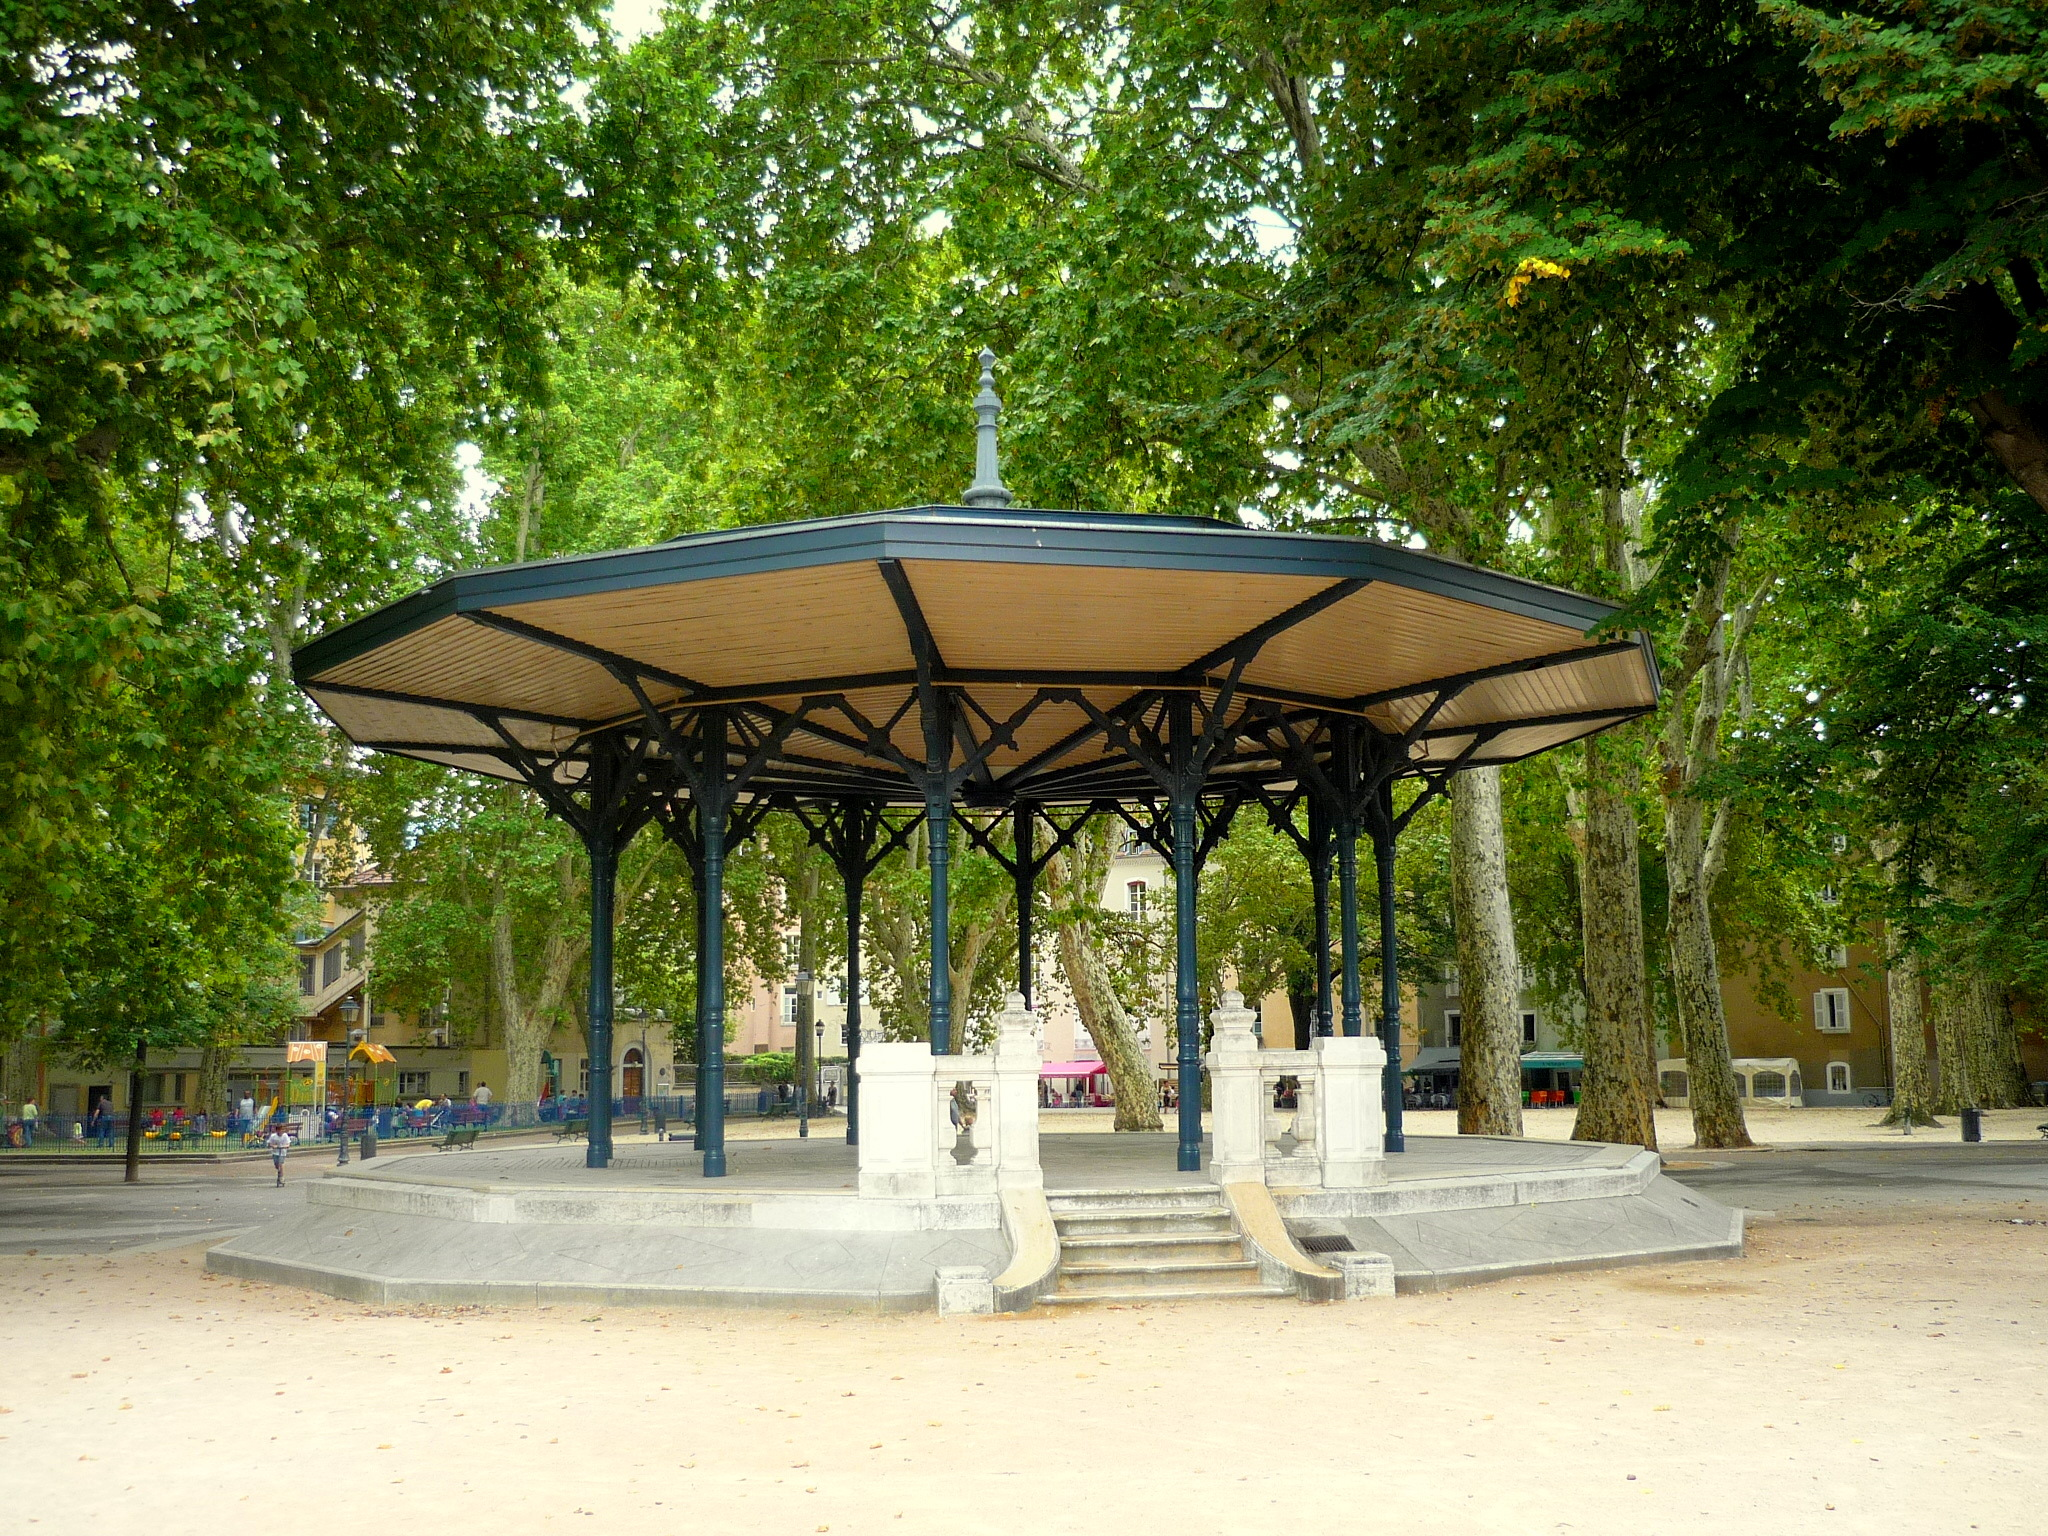 Les jolis kiosques musique de france french moments blog for A la verticale du jardin grenoble